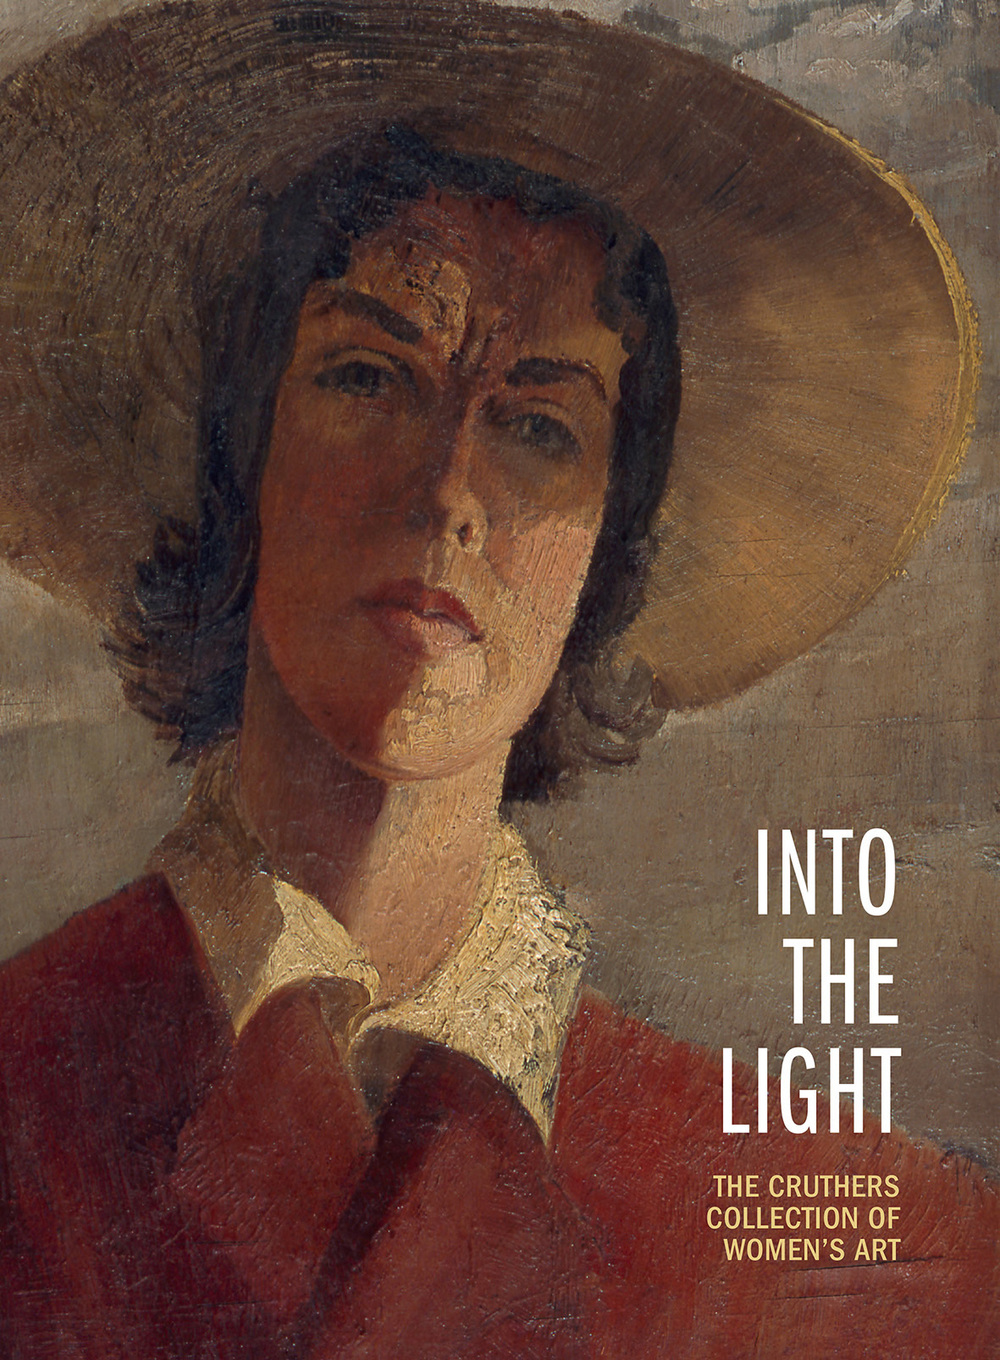 Cover of  Into the Light - The Cruthers Collection of Women's Art,    University of Western Australia Publishing, 2012, pp 130.